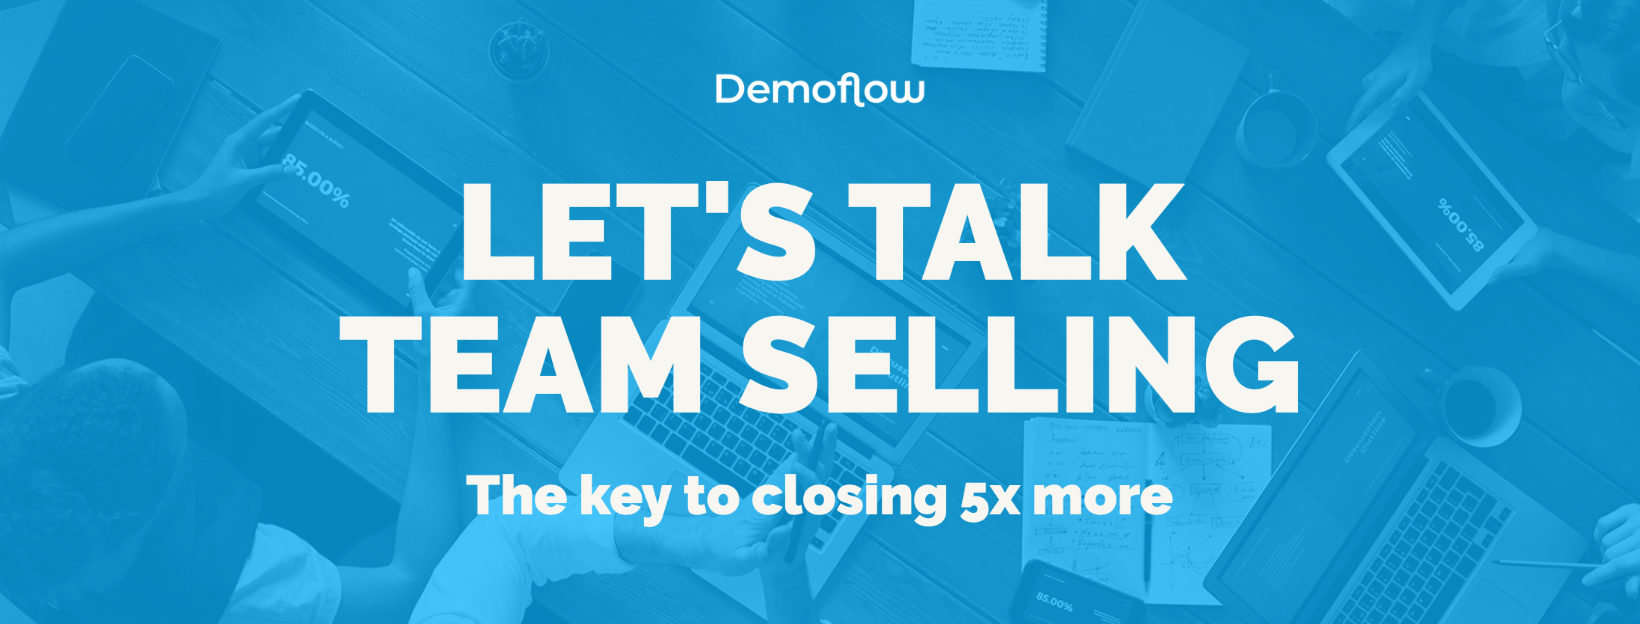 Team Selling - The Key to Closing 5x More